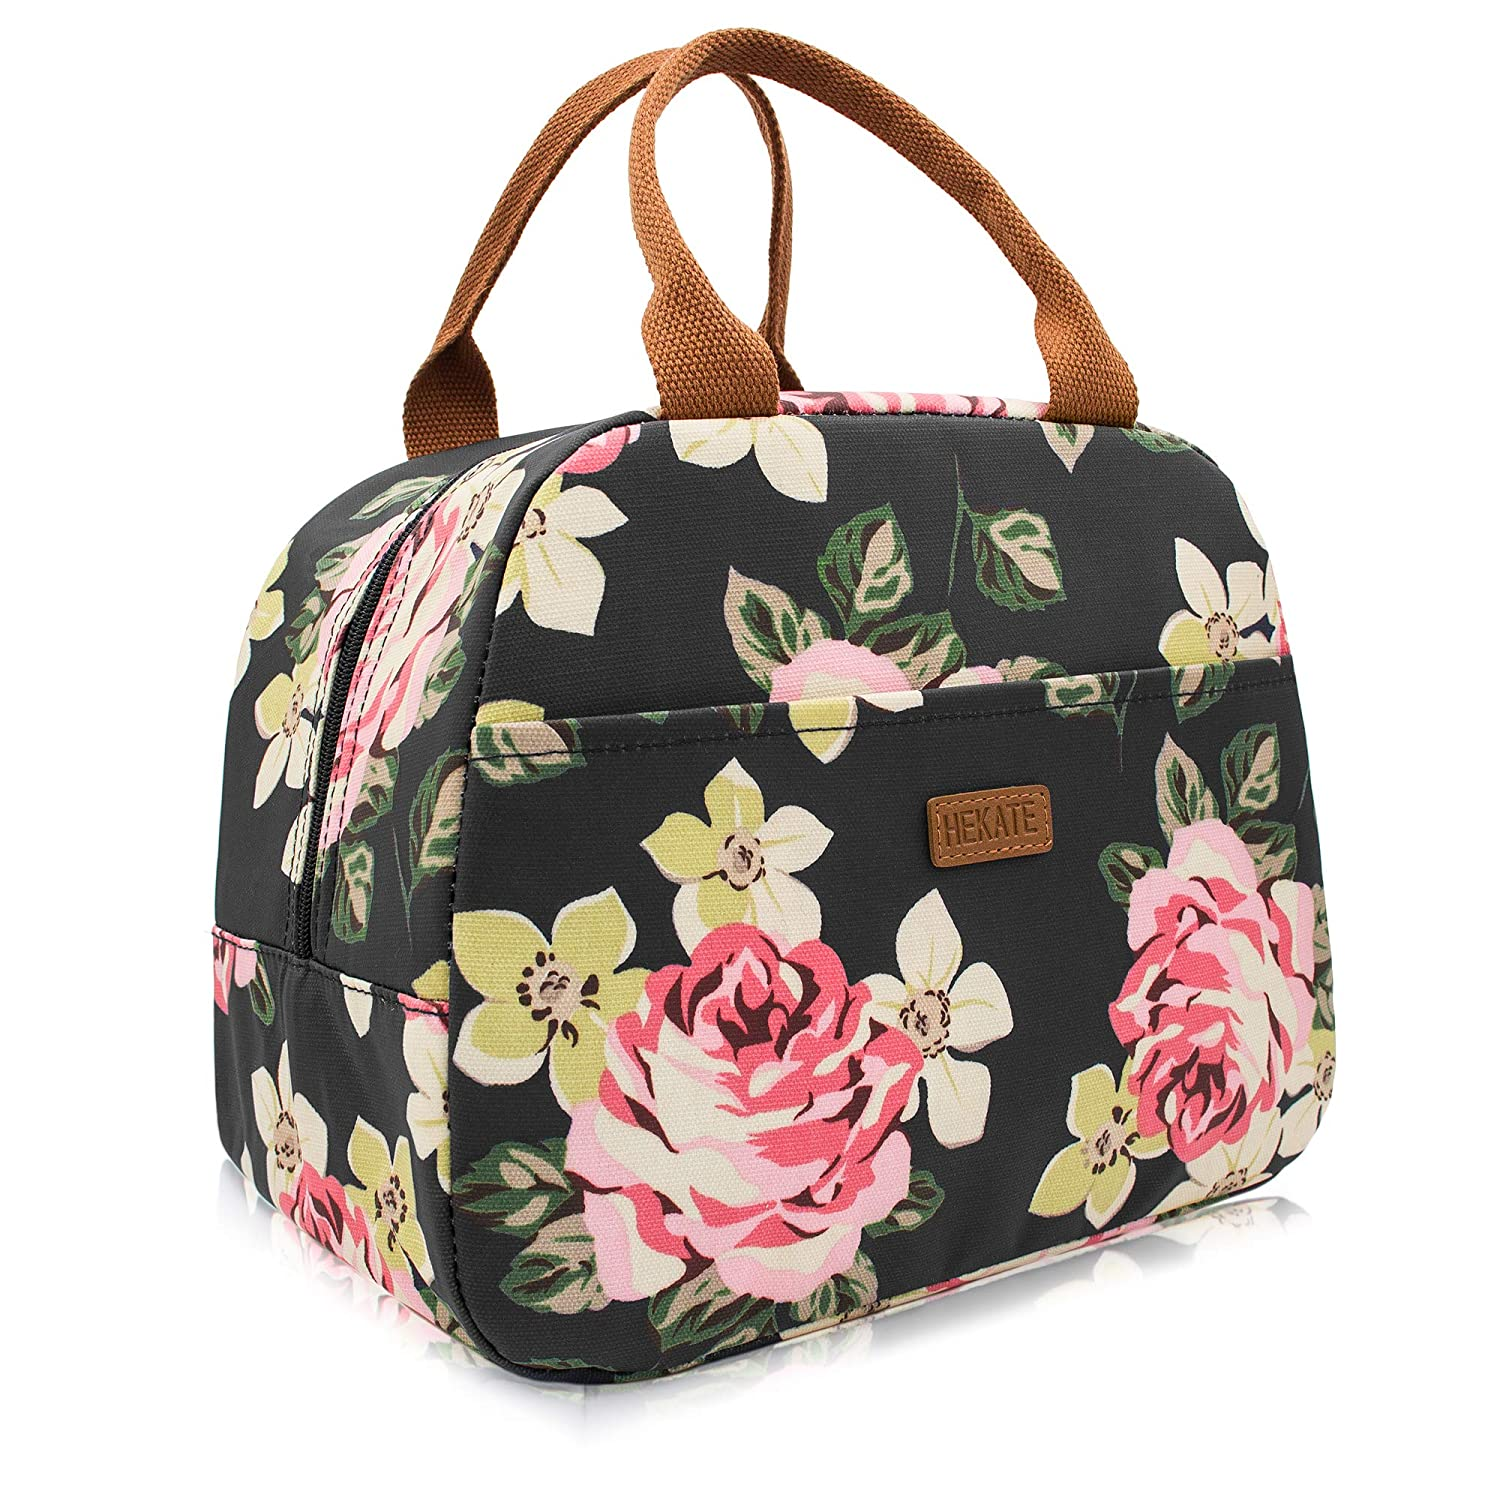 ab55e15a8e1b HEKATE Lunch Bag for women Flower Insulated Fashionable Waterproof Thermal  Floral Cooler Bag (Black)